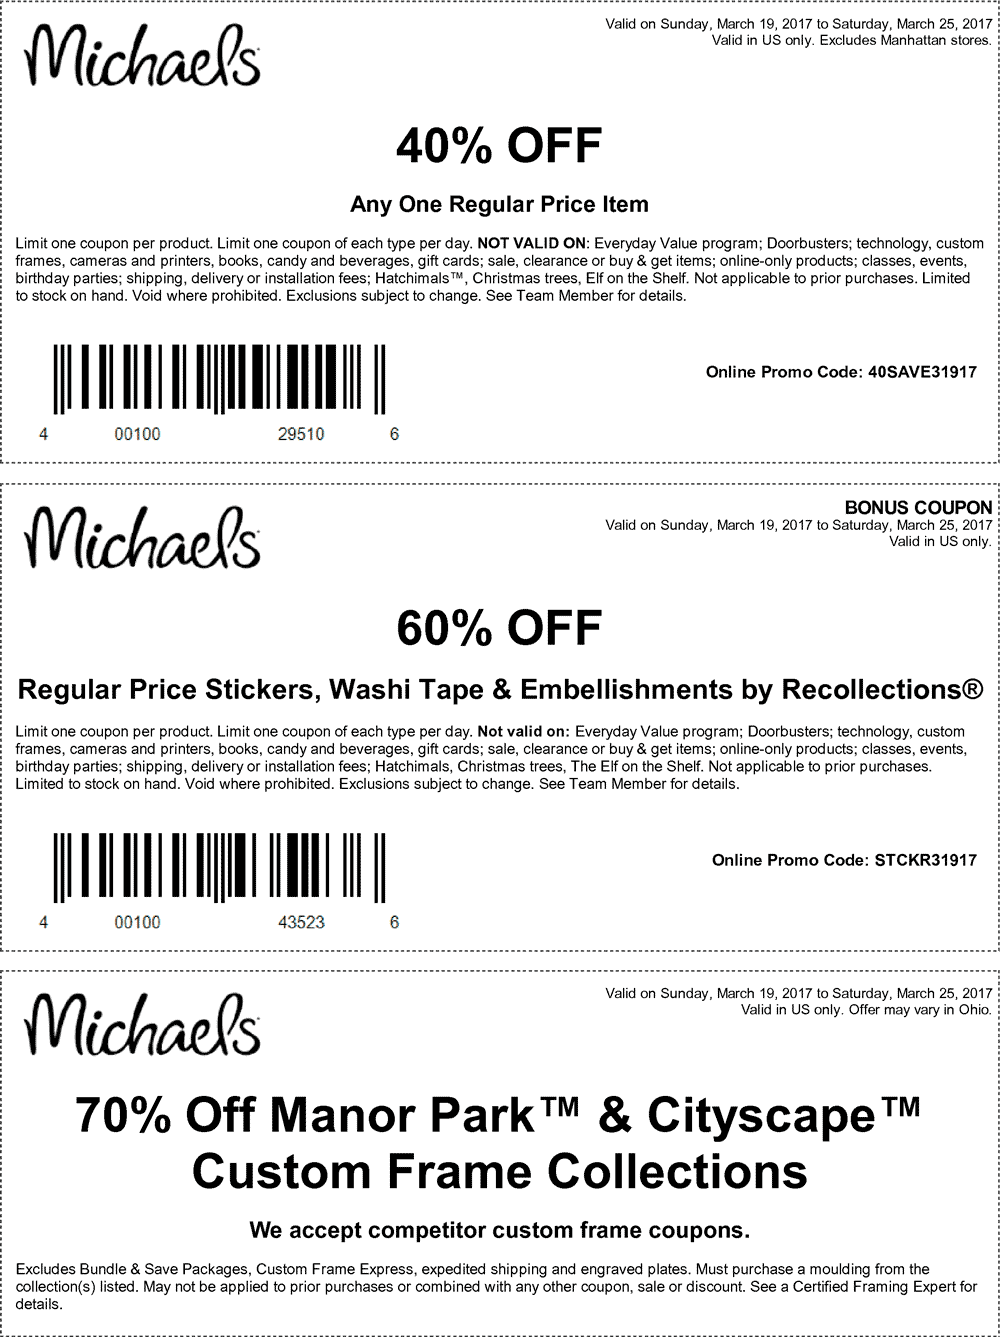 Michaels Coupon October 2017 40% off a single item at Michaels, or online via promo code 40SAVE31917